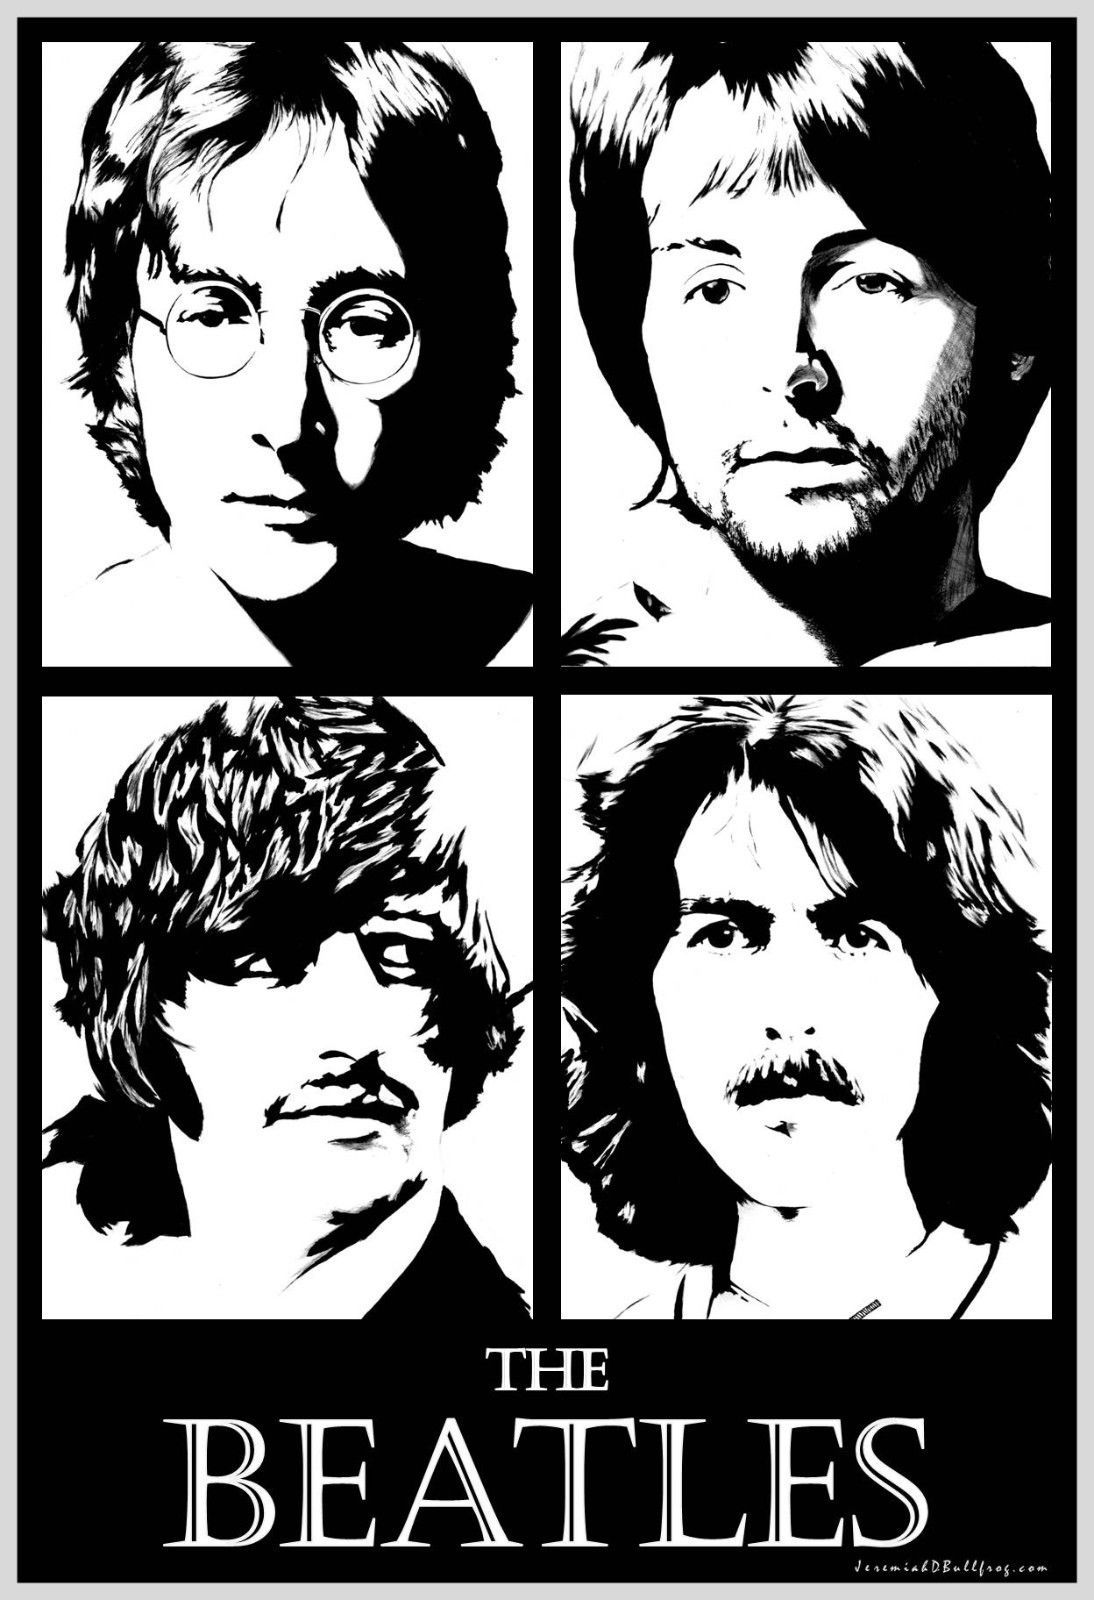 The beatles 13x19 wall art poster print help let it be abbey road love ebay